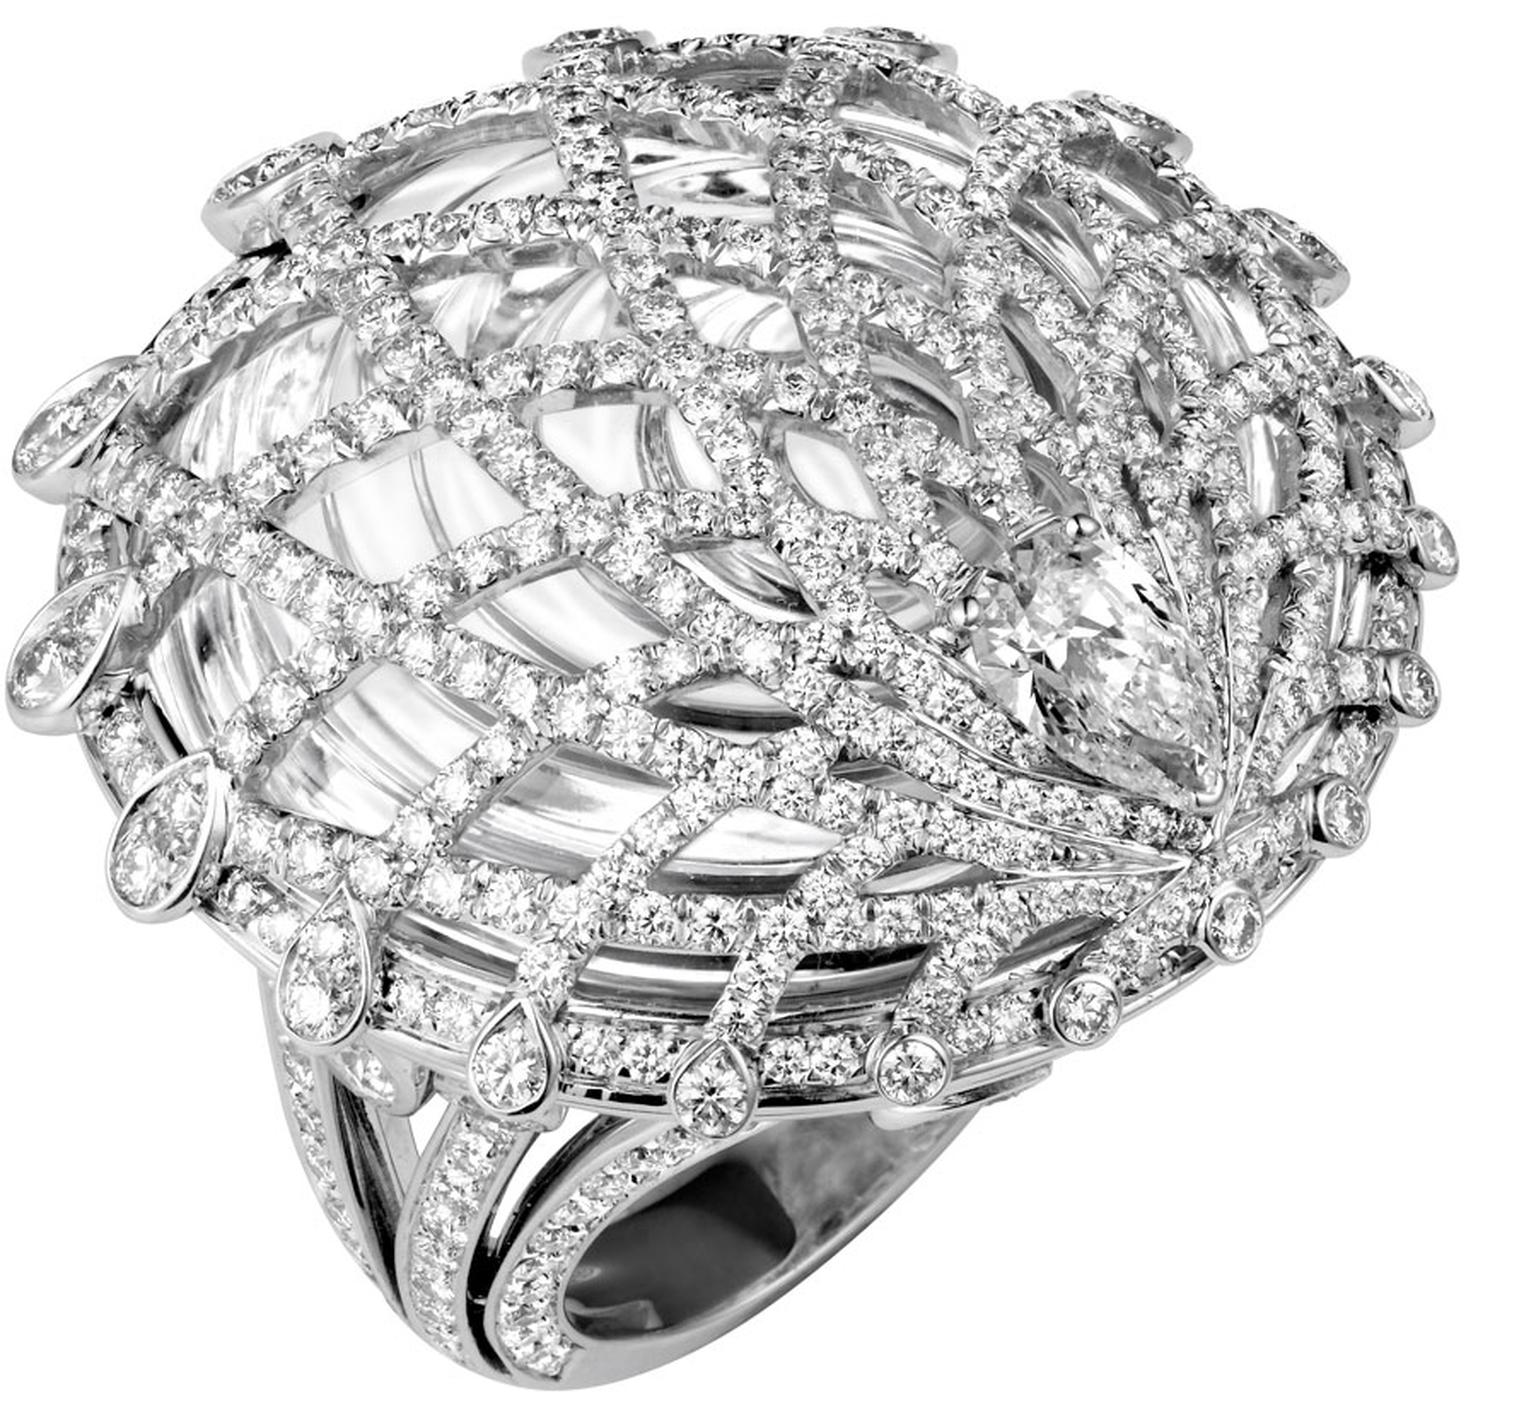 Cartier-Biennale-white-gold-ring.jpg